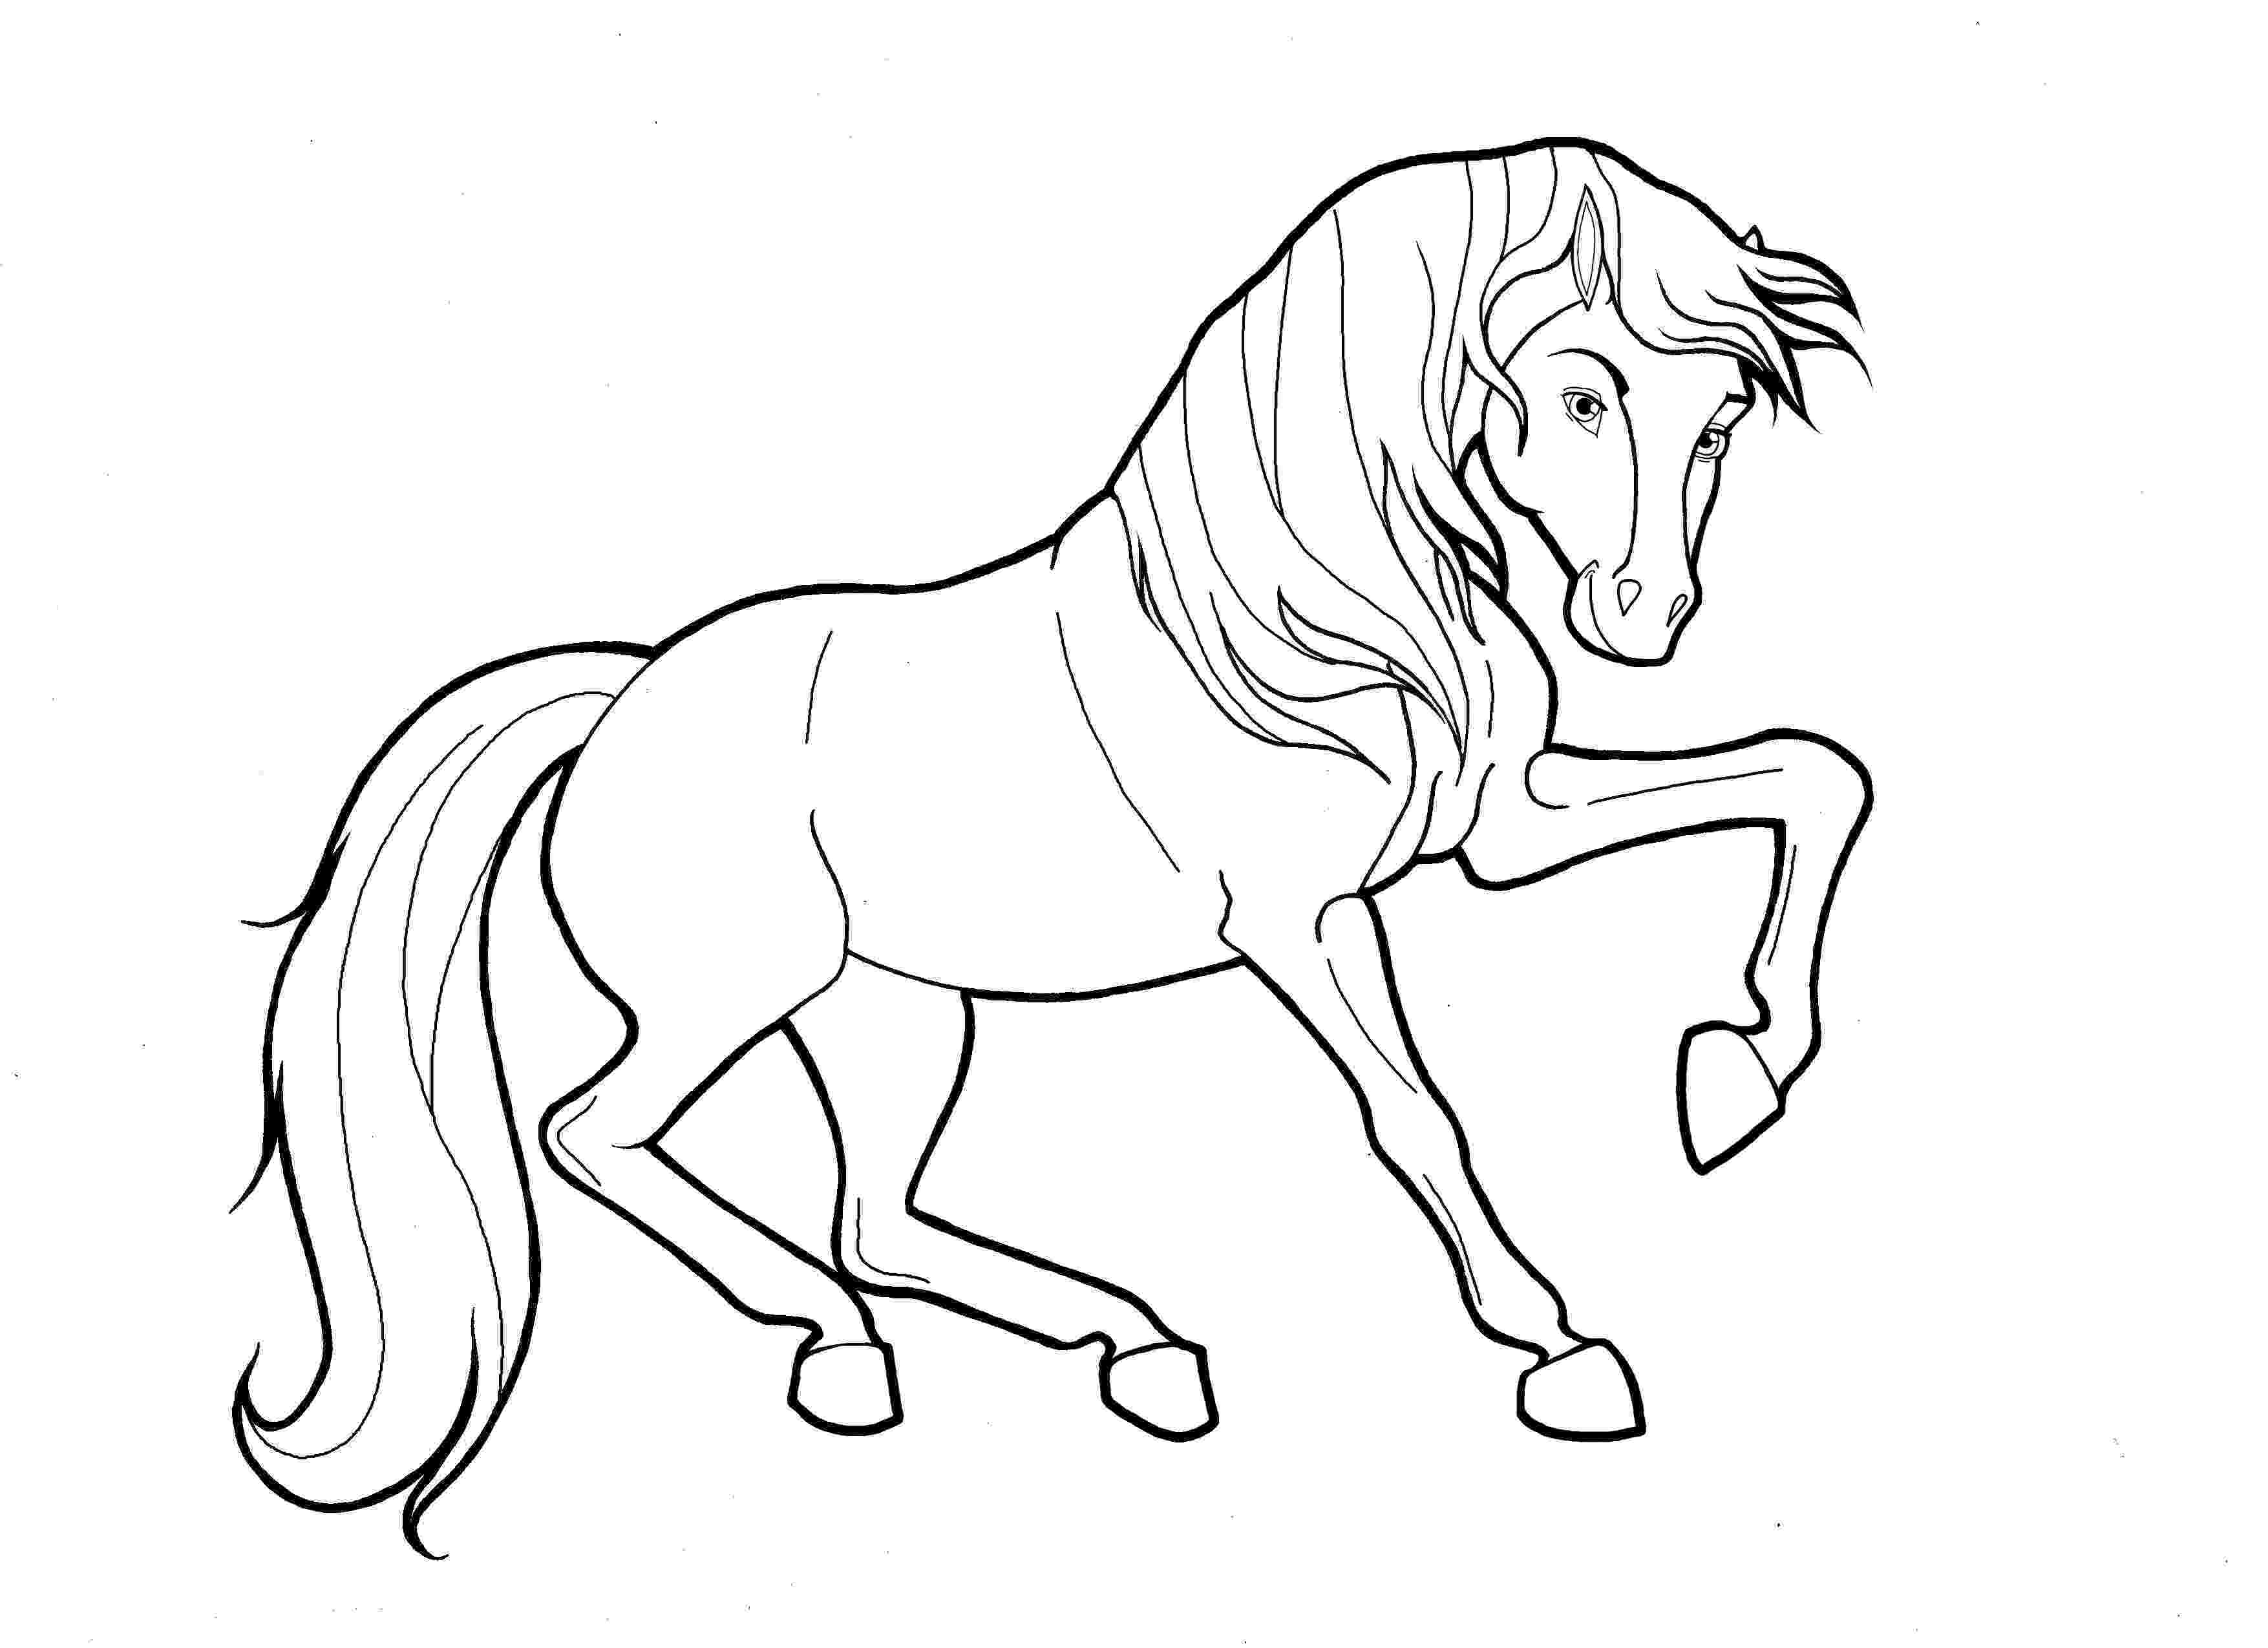 coloring horse free horse coloring pages horse coloring